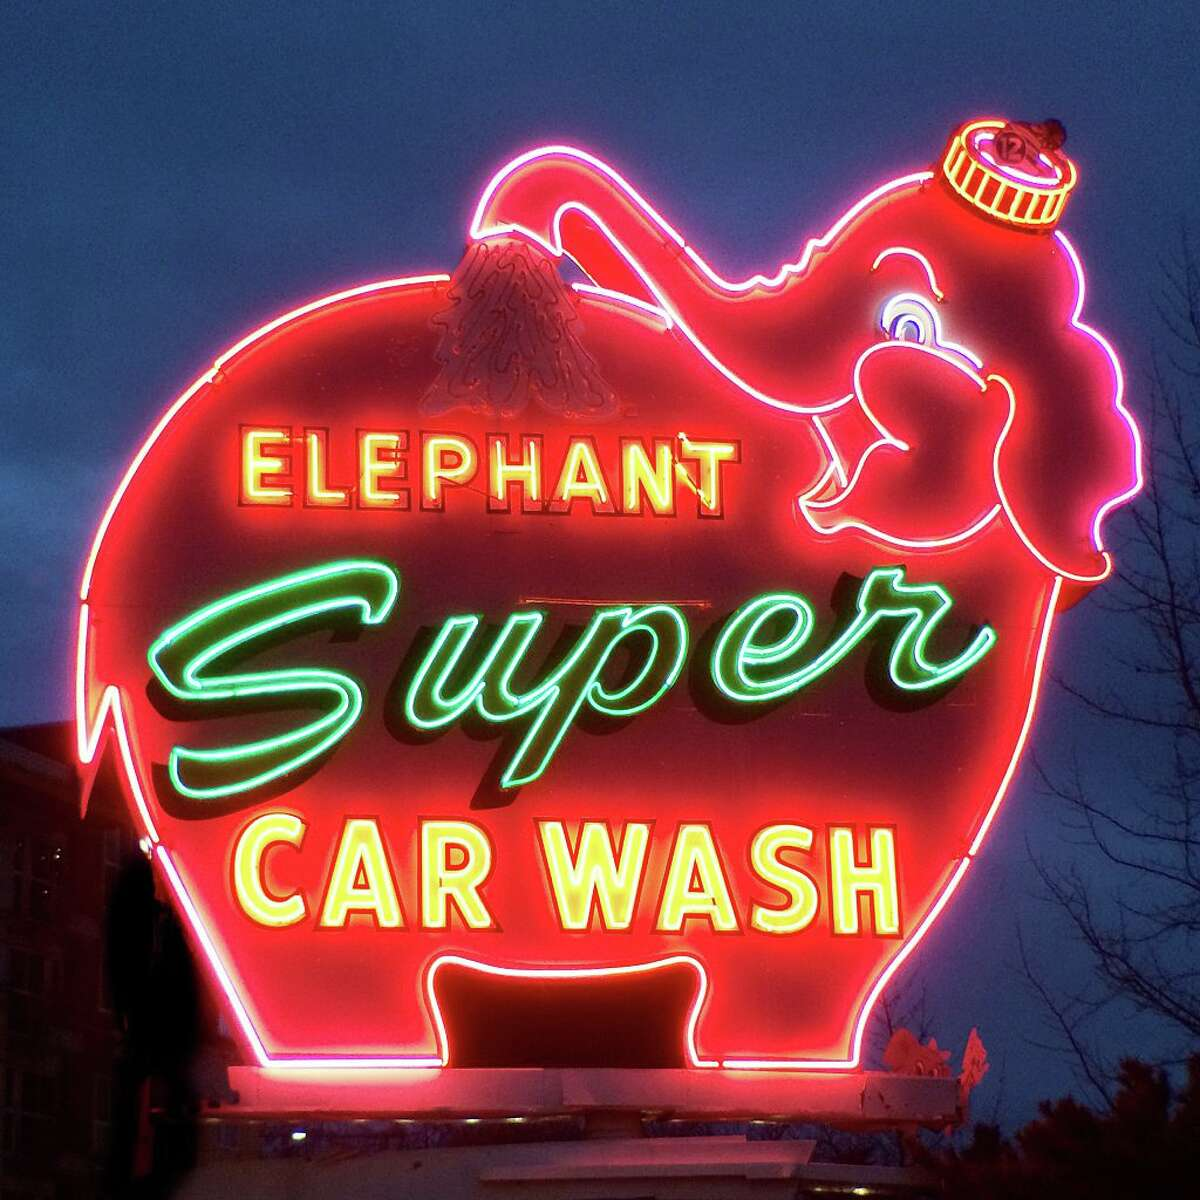 Amazon to restore Elephant Car Wash sign, display on campus.